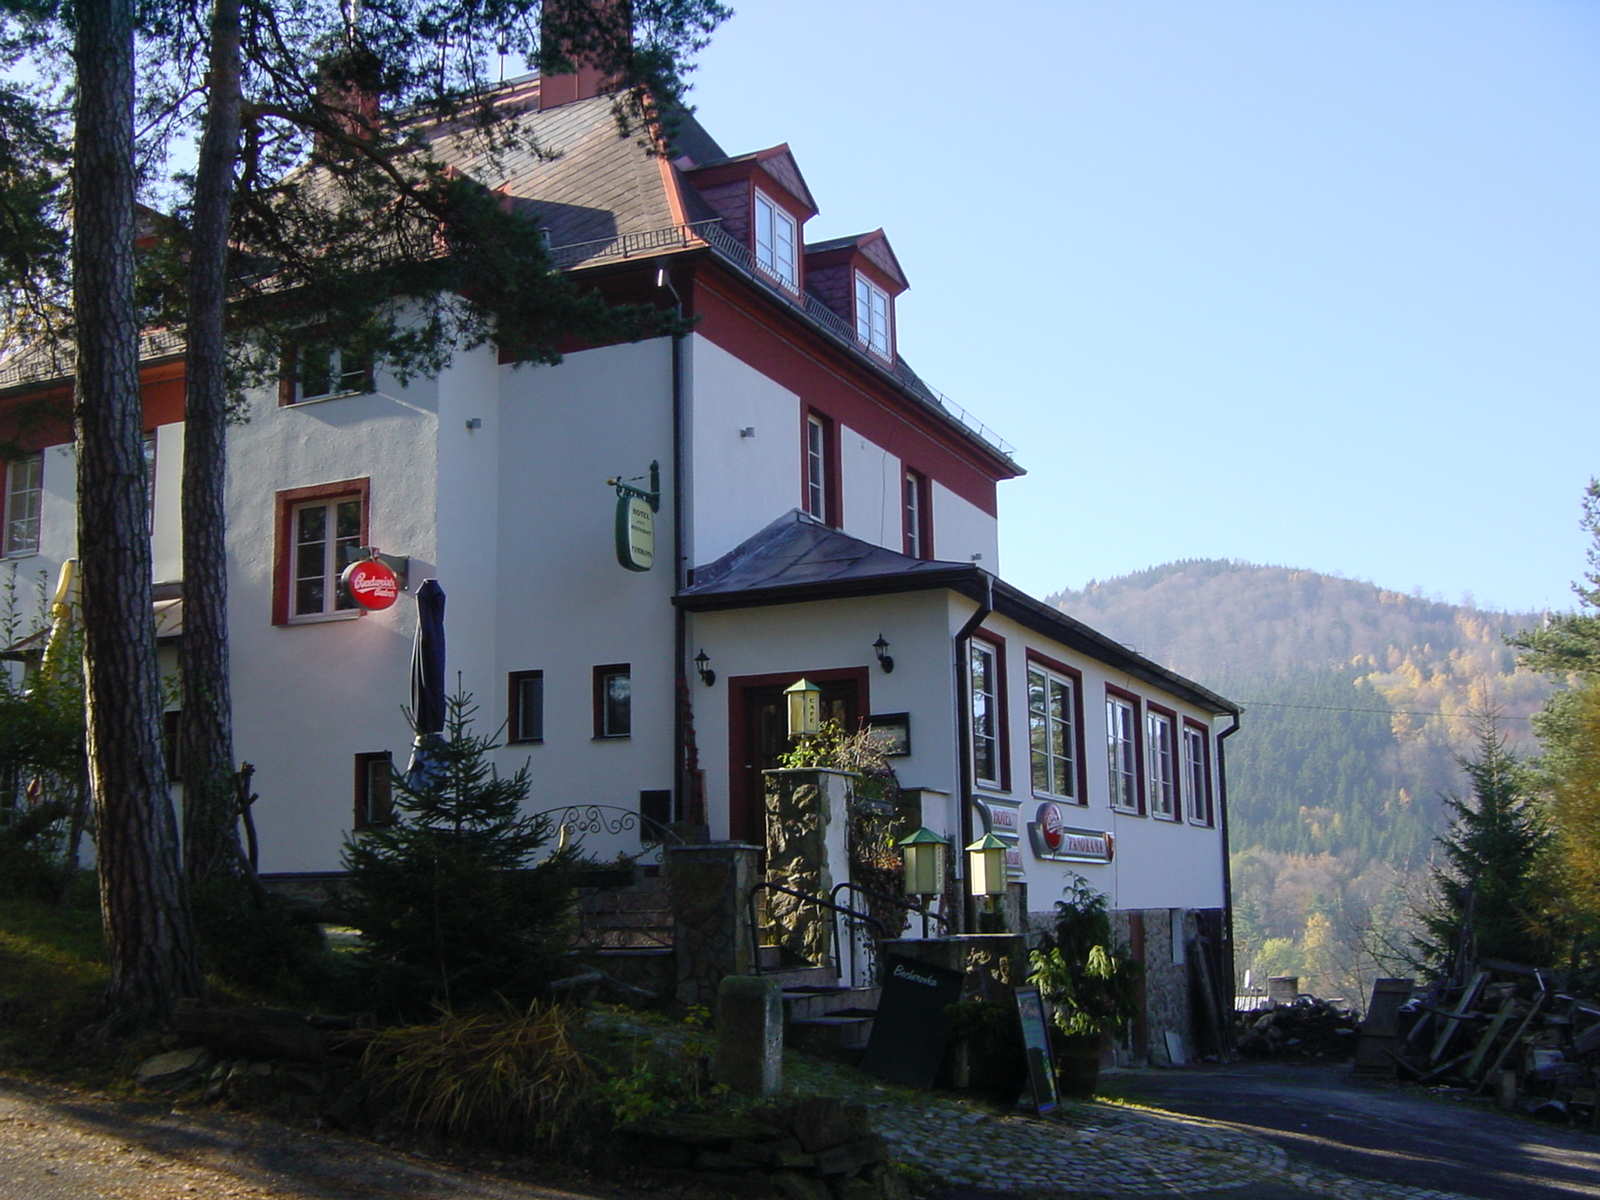 http://www.hotelpension.cz/Previo/xmlData/Images/651/img/photos/782.jpg